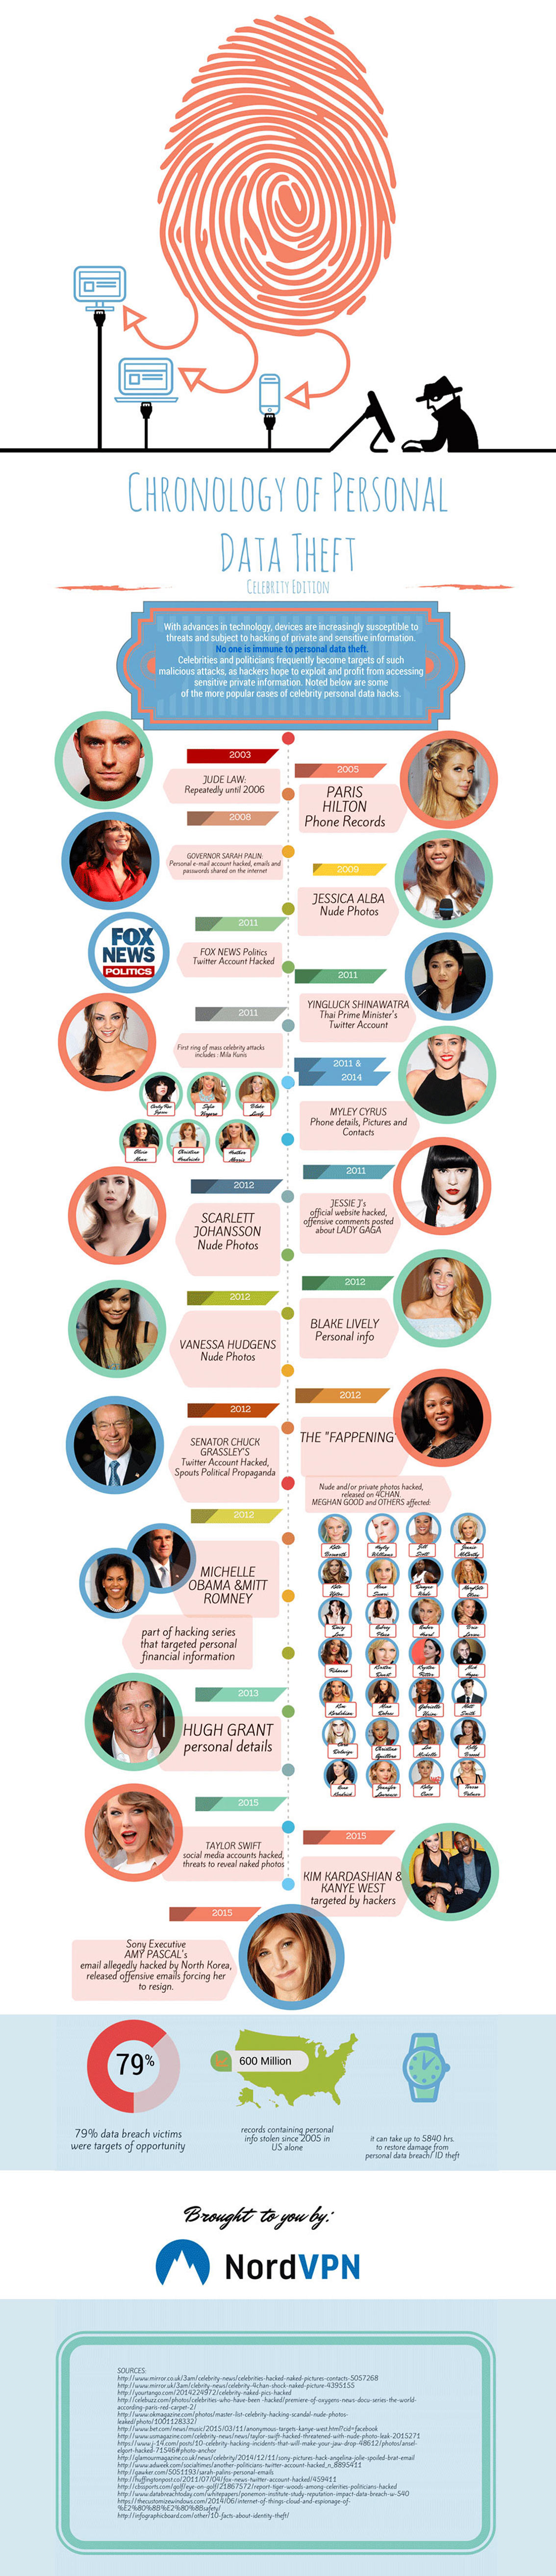 Chronology of Celebrities Private Data Theft Infographic